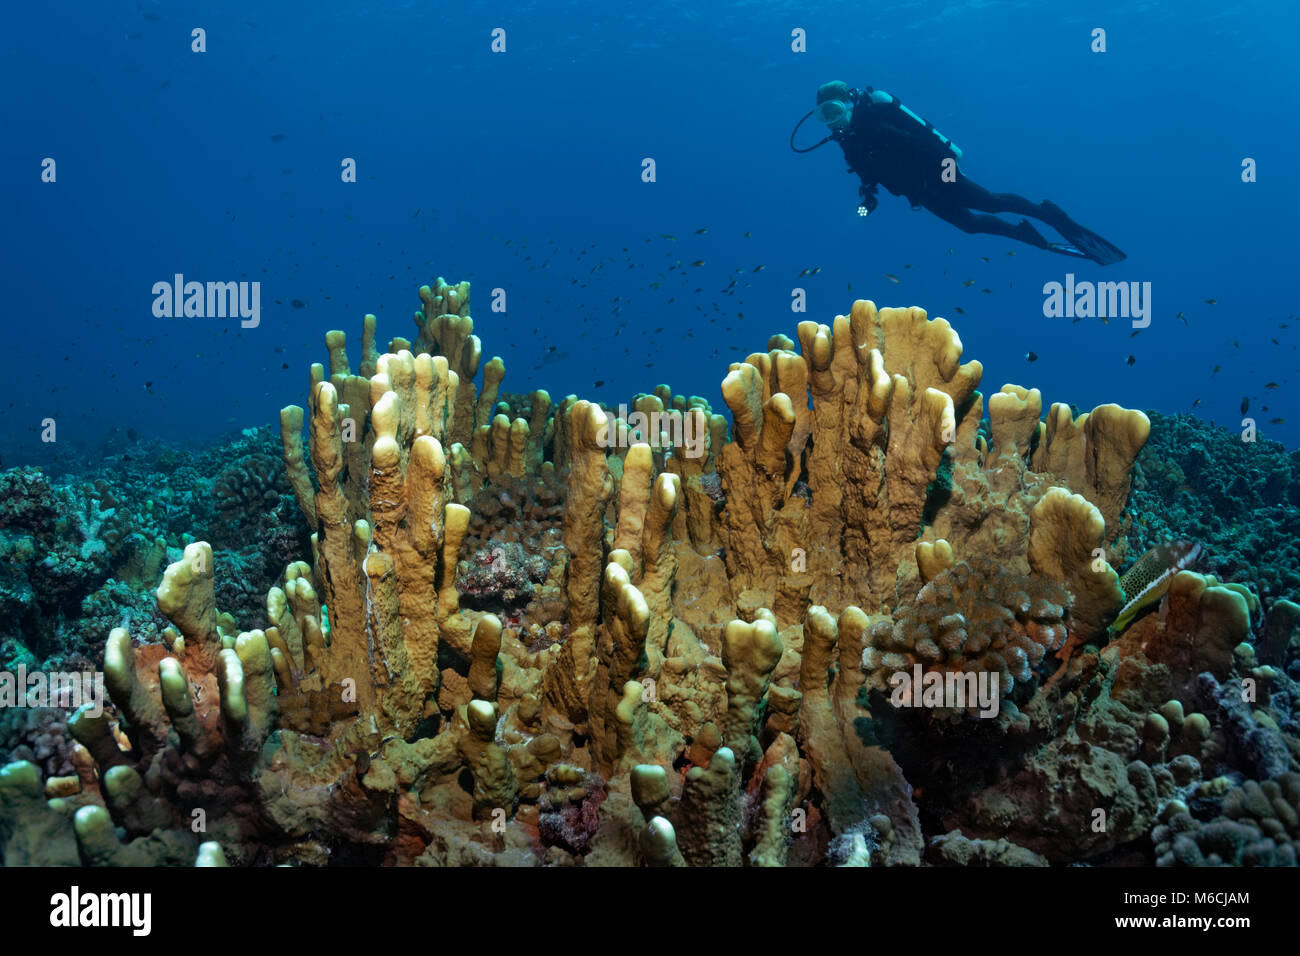 Divers over Blade firel coral (Millepora platyphylla), Pacific, French Polynesia - Stock Image